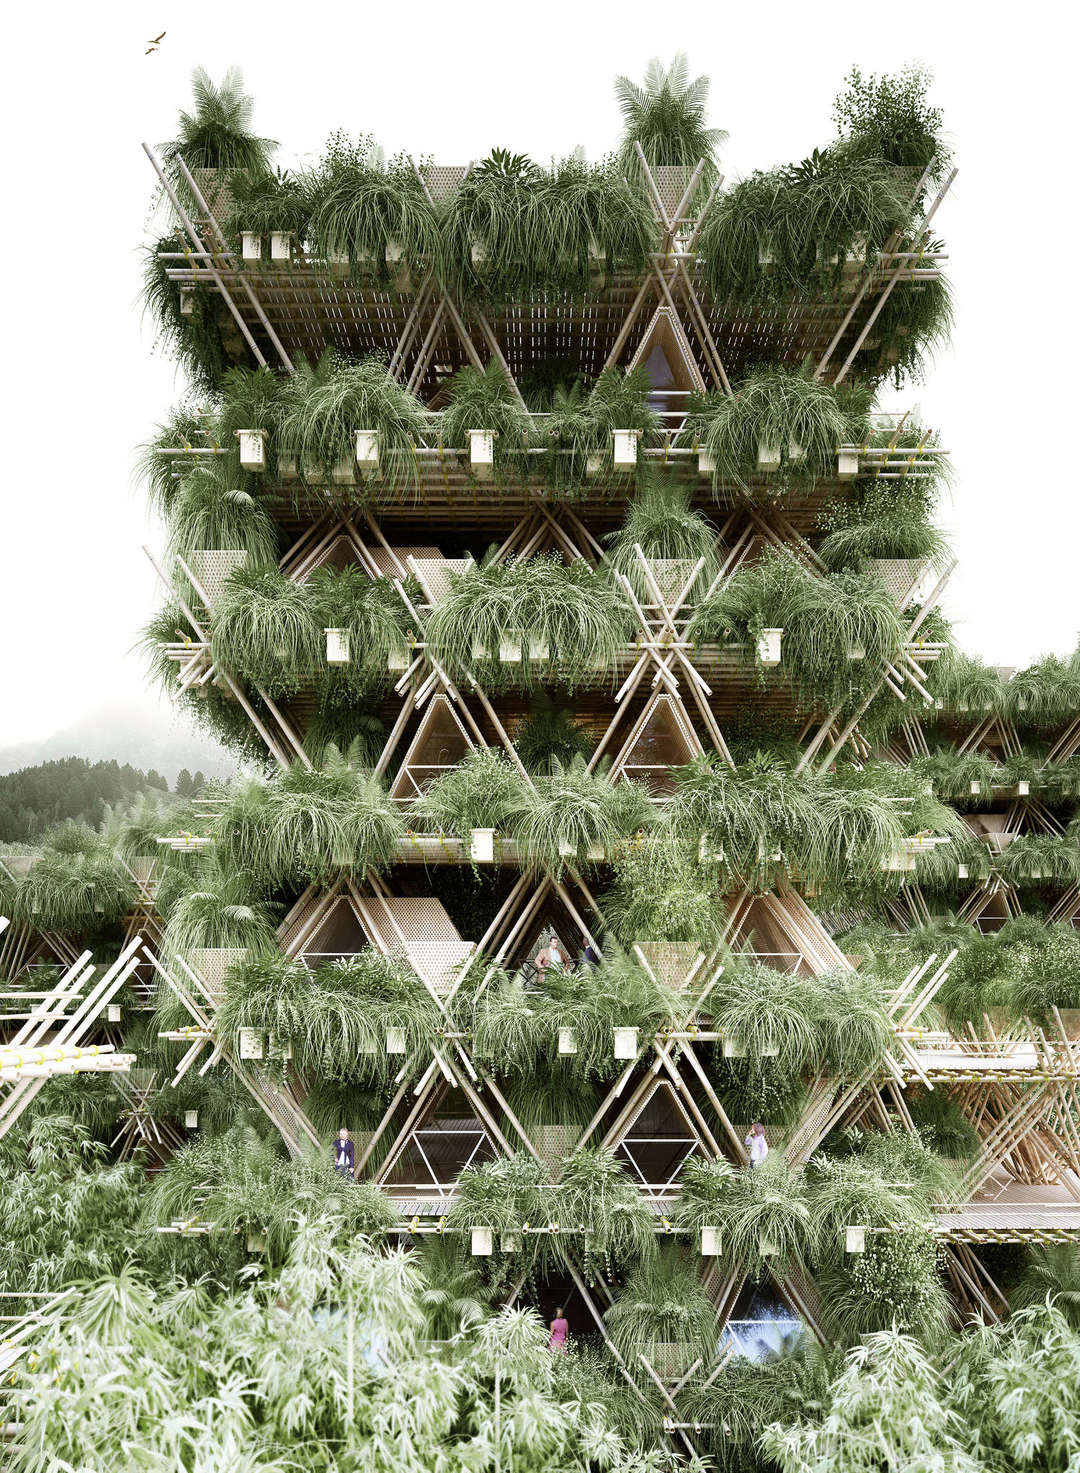 Rising Canes Pavilion in Beijing, China by Penda | Yellowtrace